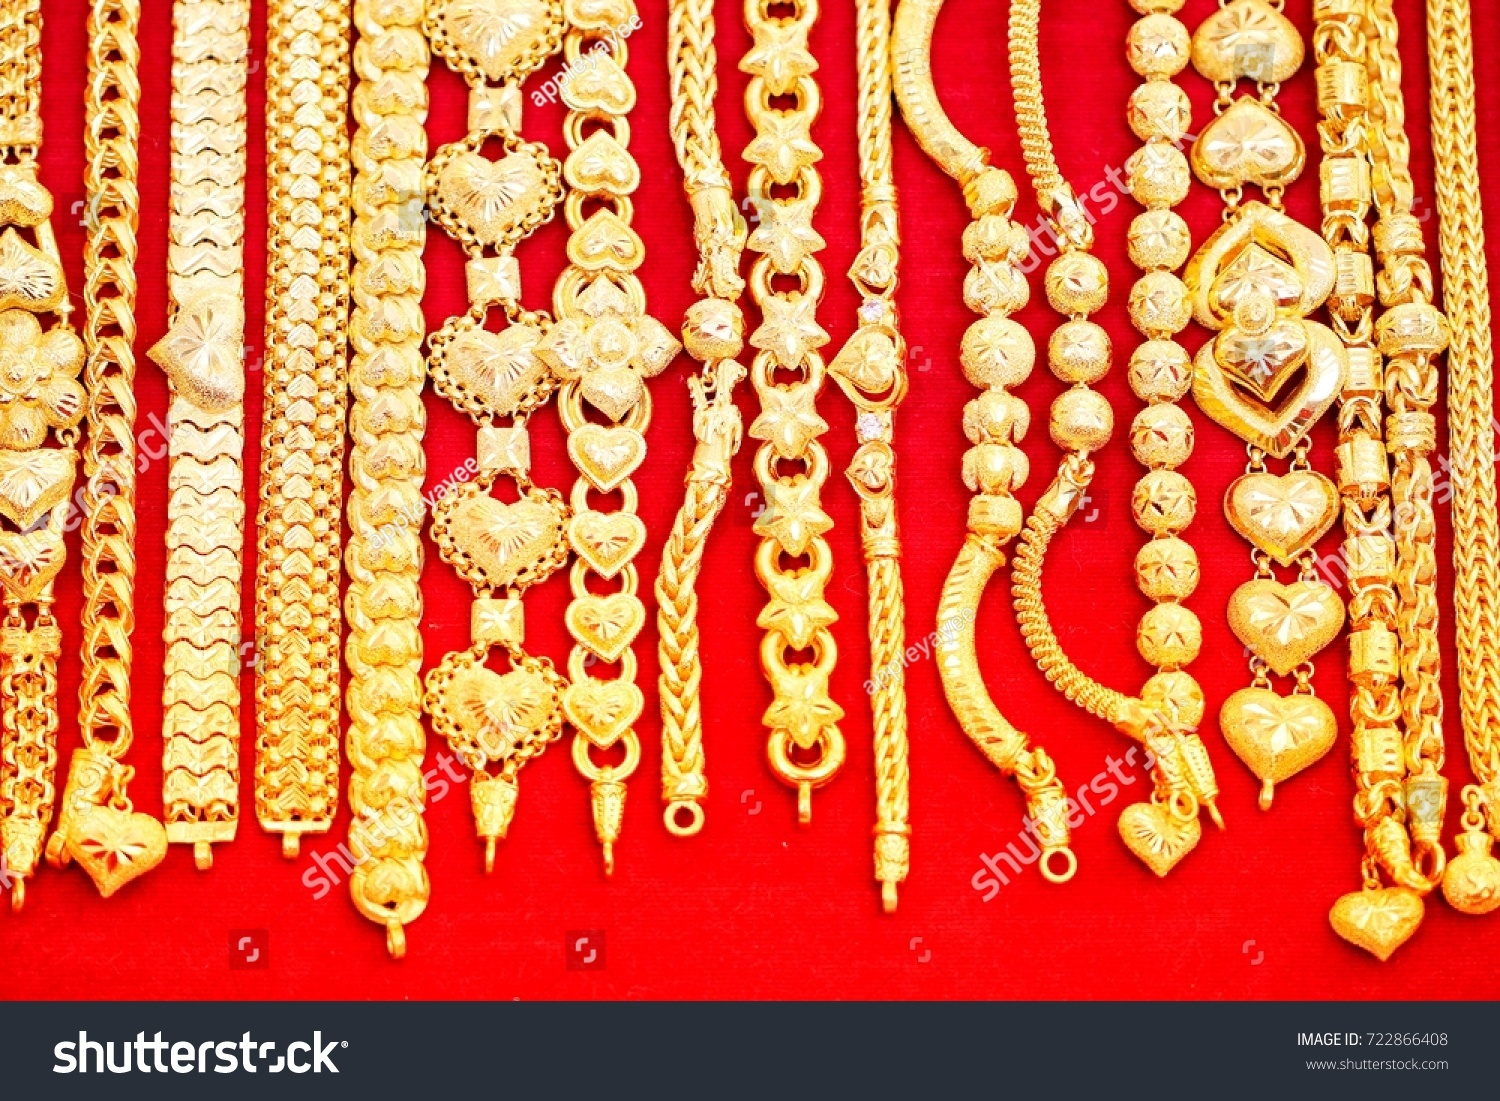 free on shutterstock shiny for style jewelry creative image woman thai red at velvet bracelet design photo chains stock tray gold royalty show